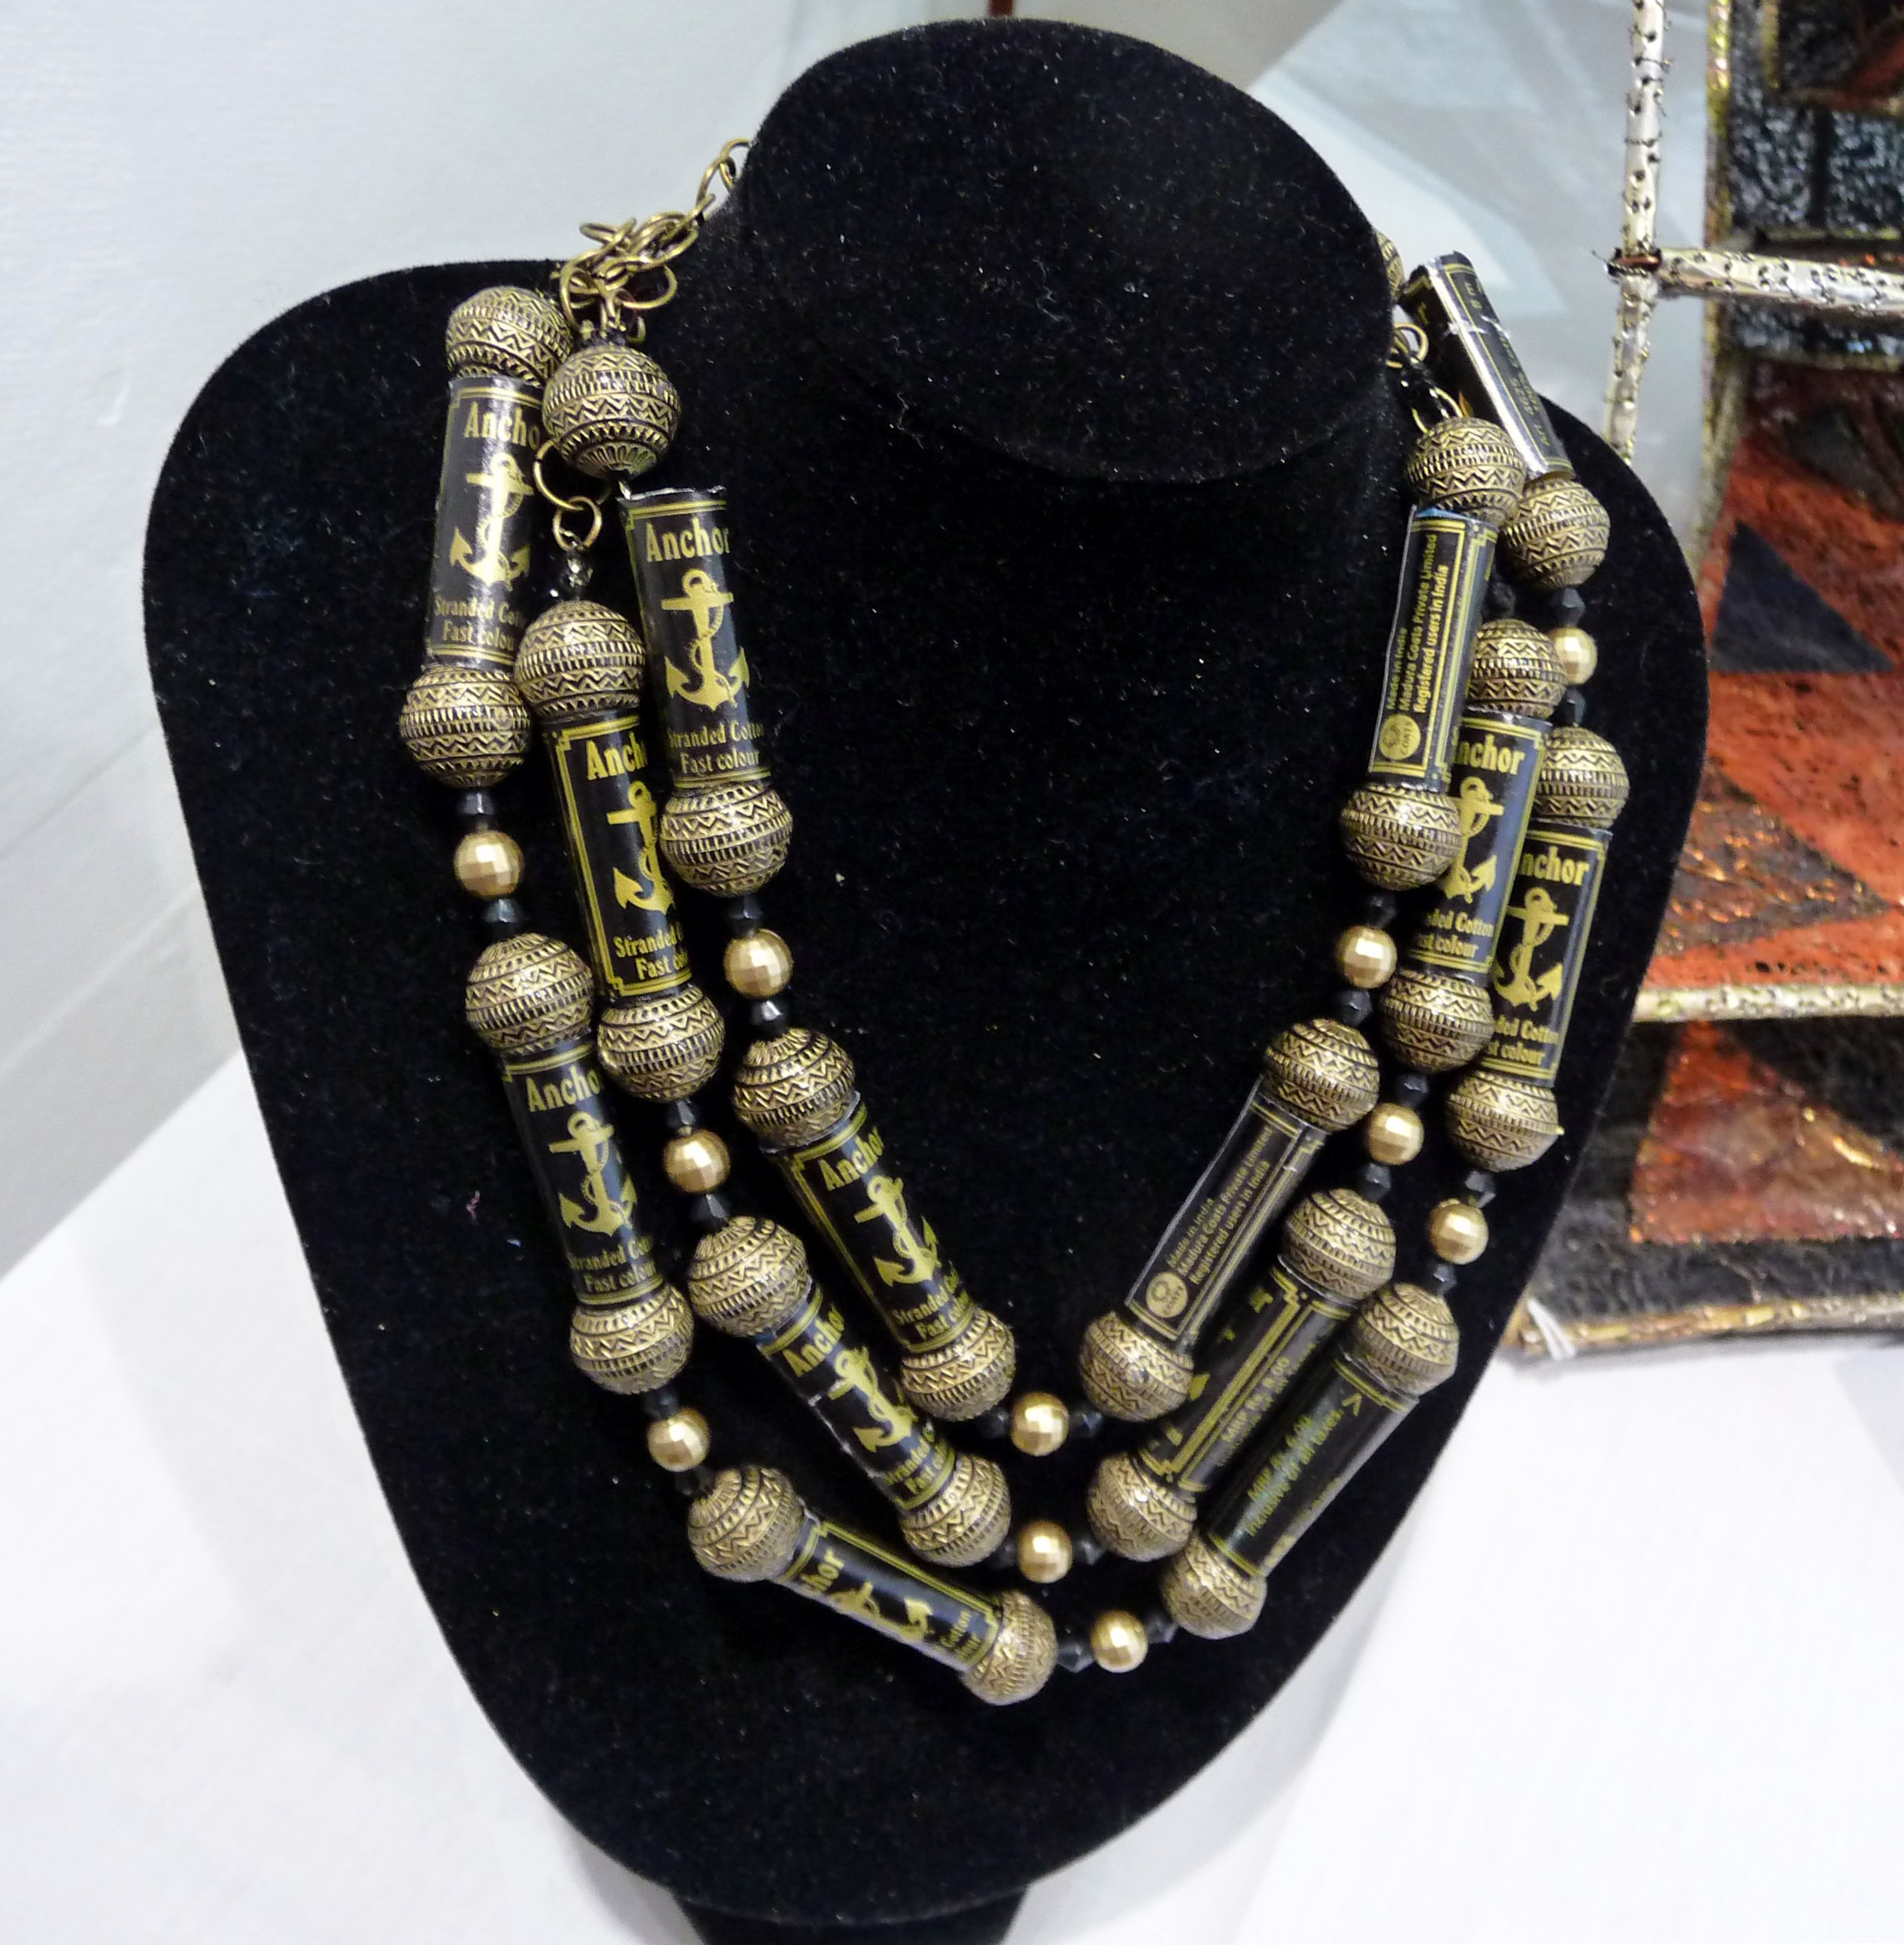 JEWELLRY by Anita Kumar, paper beads on embroidery threads